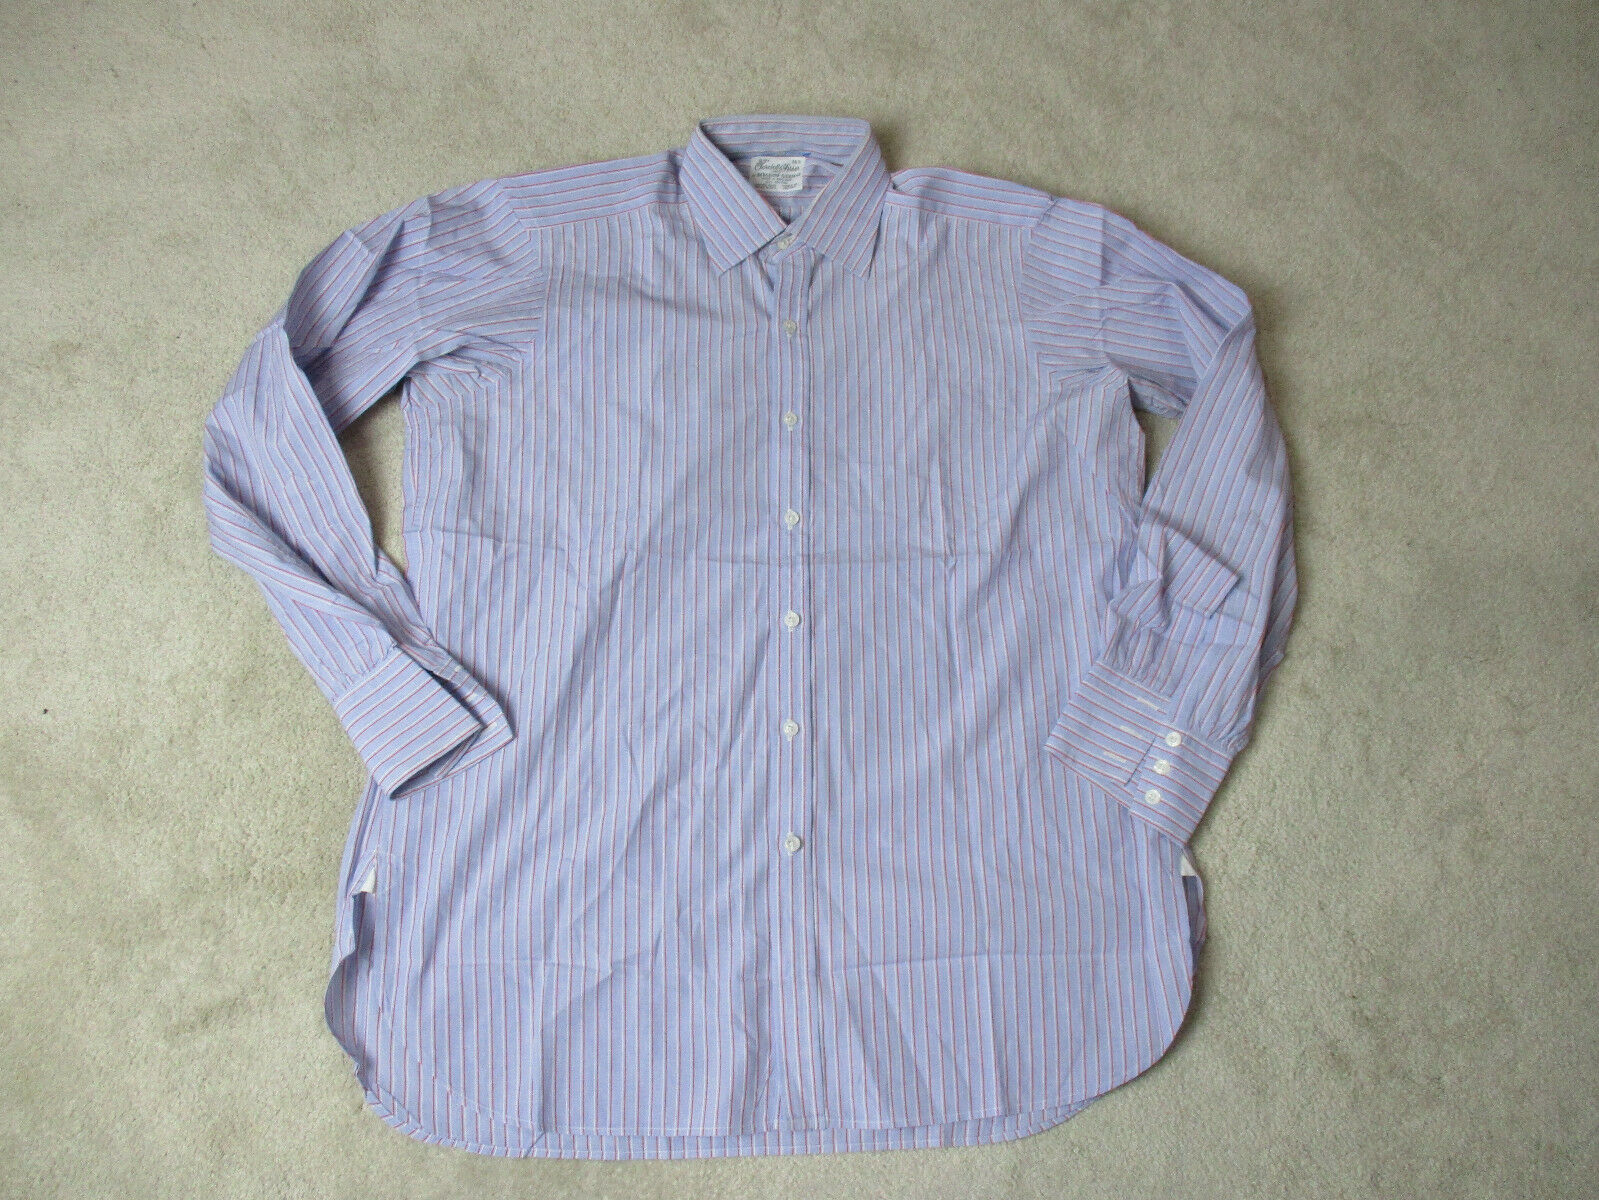 Turnbull & Asser Button Up Shirt Adult Large 16 1 2 Red bluee Office Casual Mens